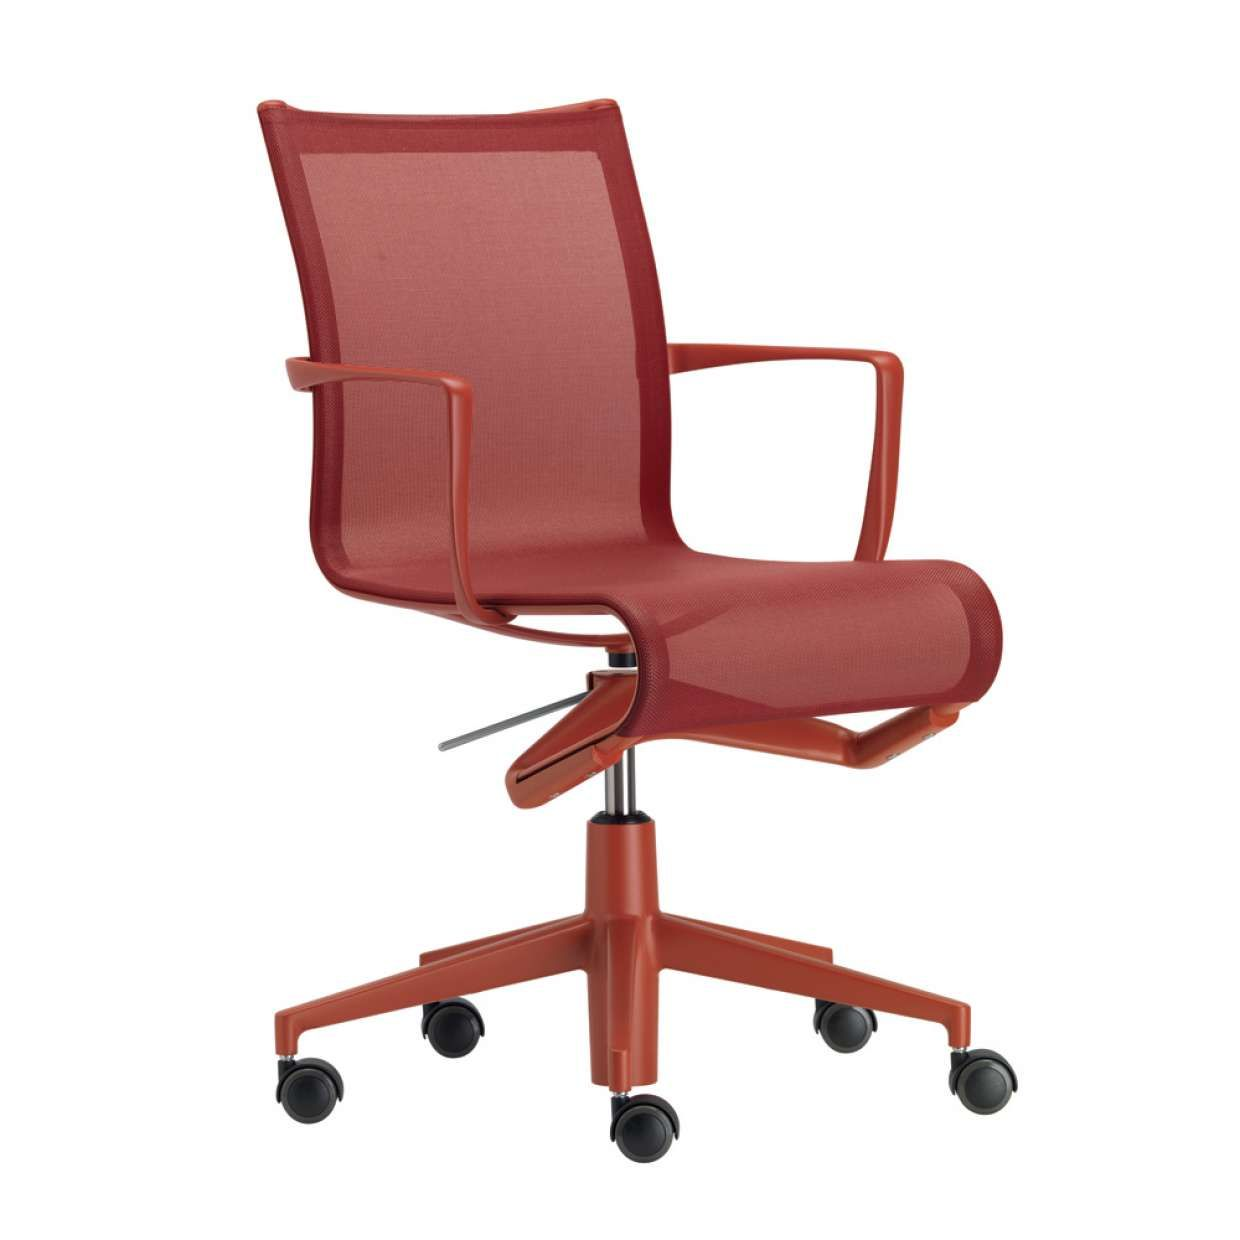 RED #rollingframe by Alberto Meda | Office chair | Pinterest